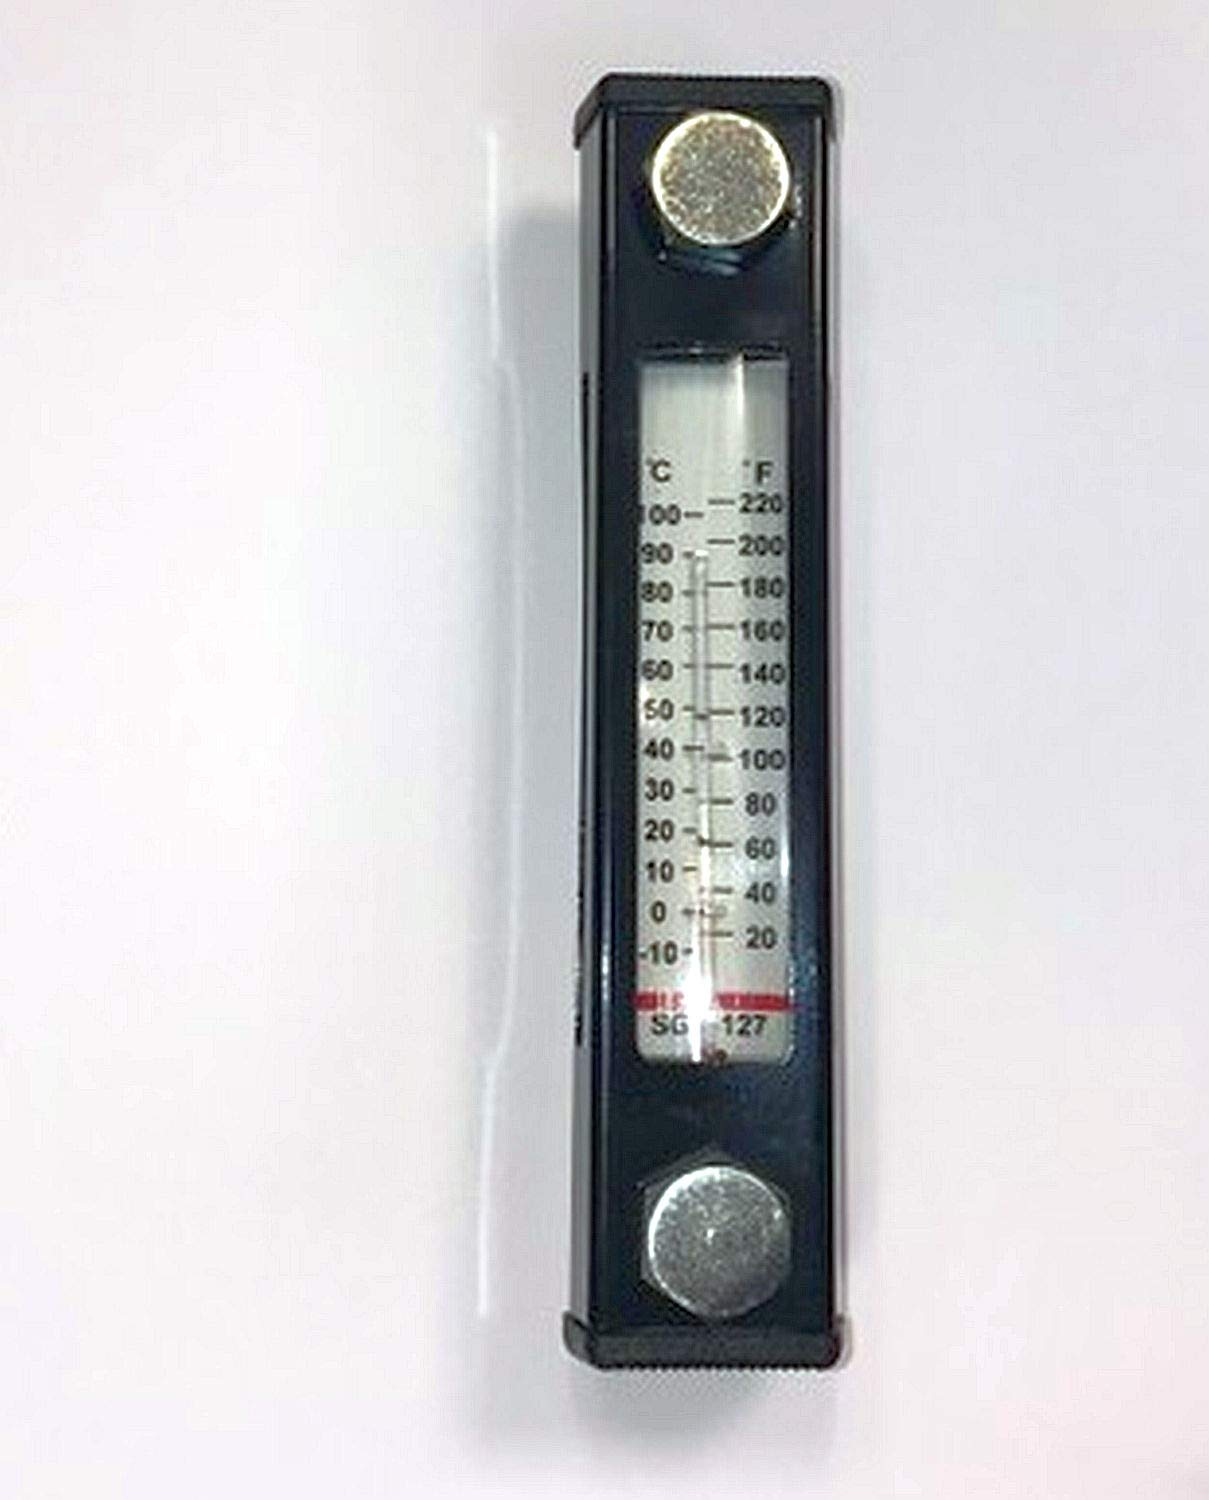 Oil Tank Hydraulic Level Indicator with Thermometer Hydraulic Tank Oil Level Gauge Oil Preserving Glass.